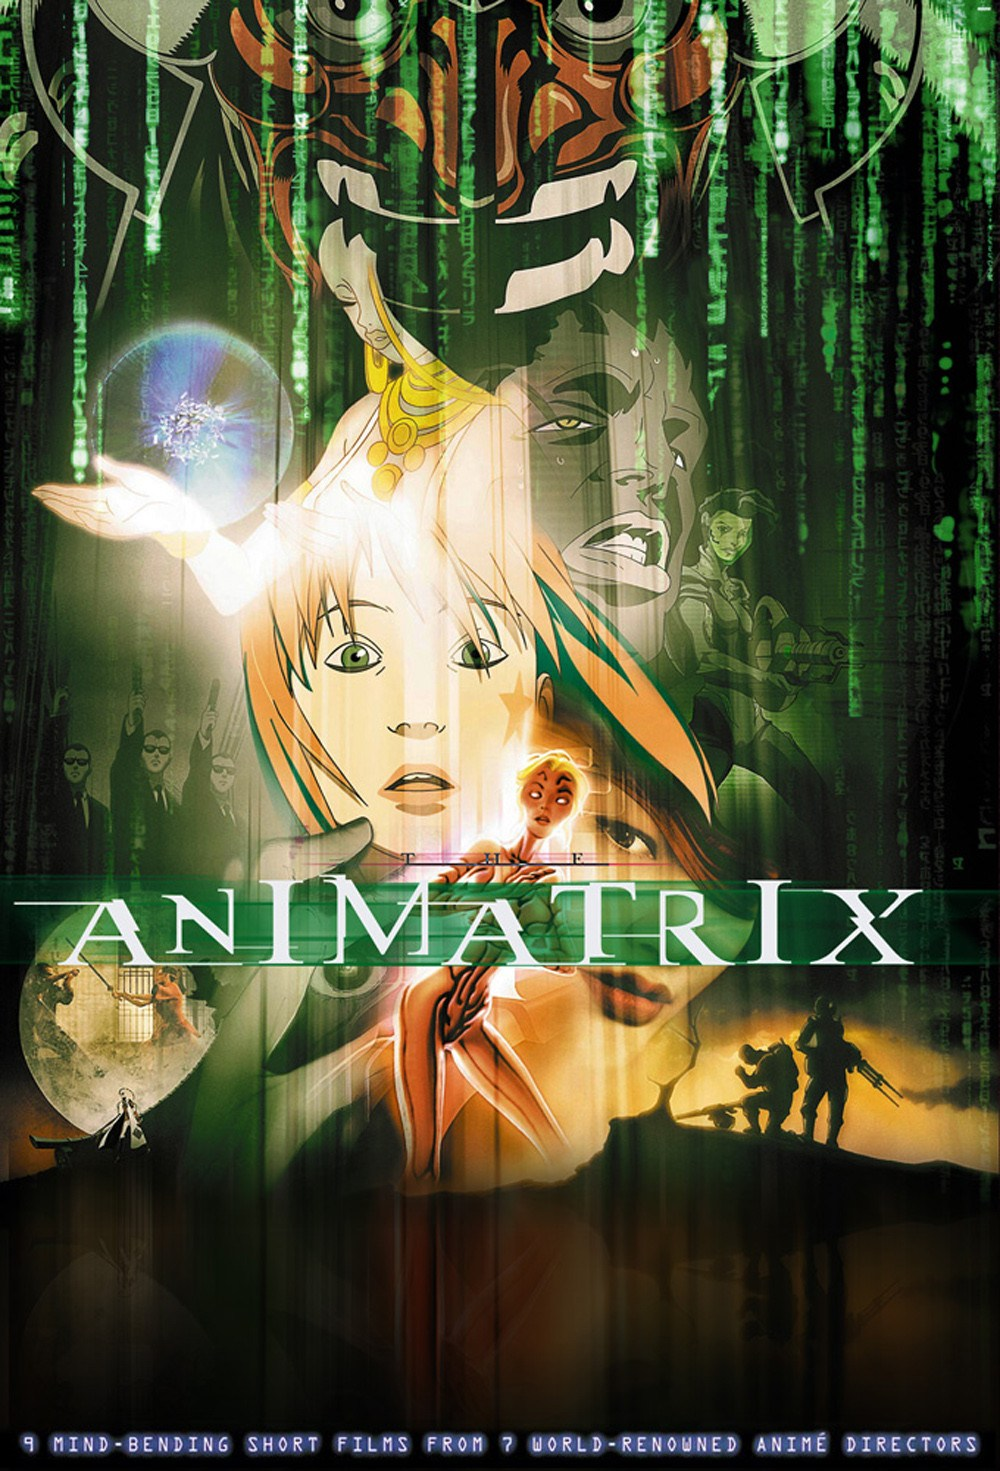 Top 10 Cyberpunk Anime Masterpieces That you Need to Watch - Animatrix